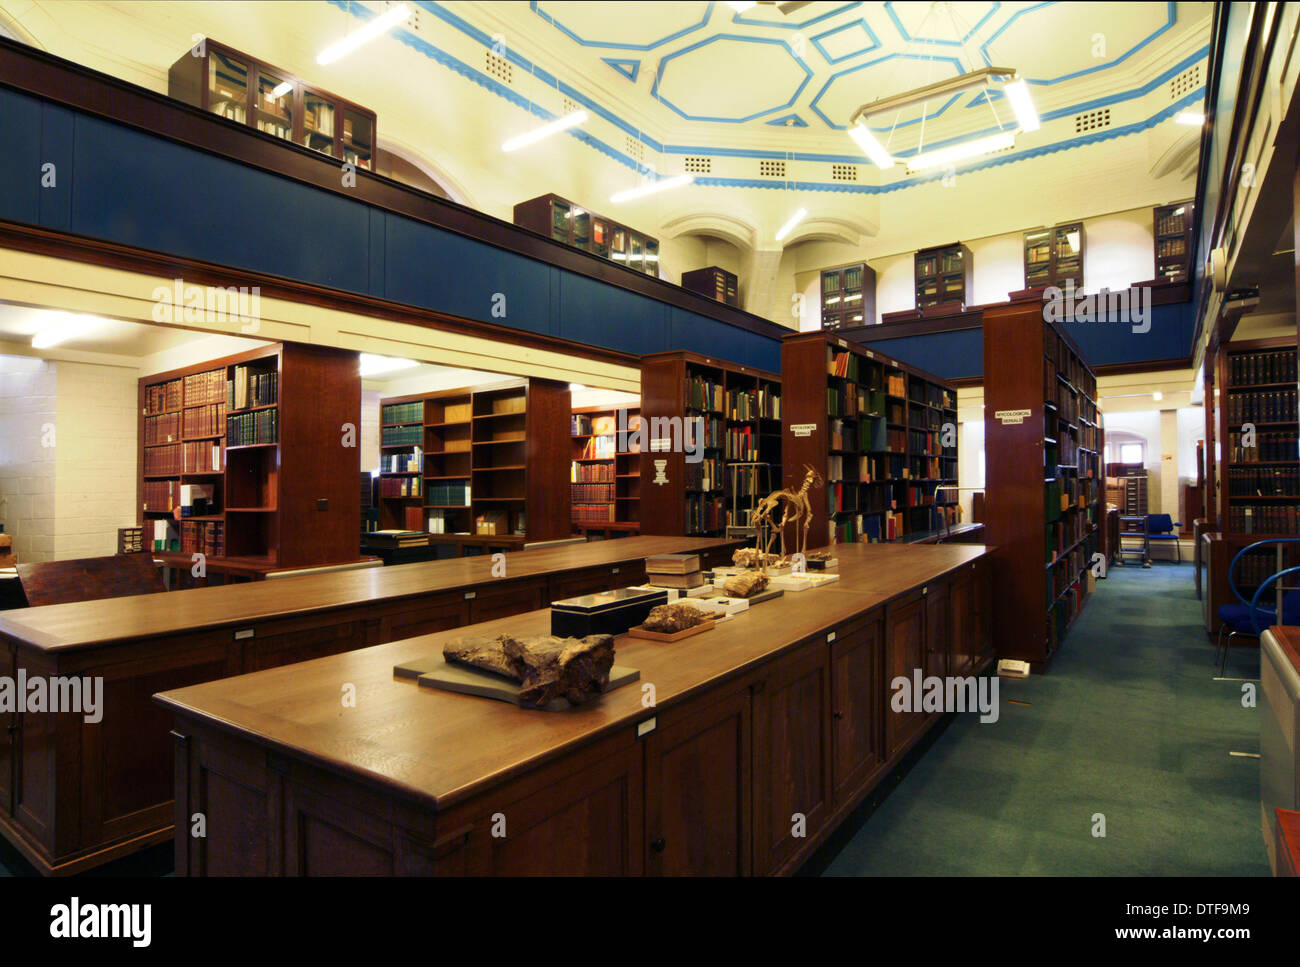 The Botany Library Special Collections Room - Stock Image